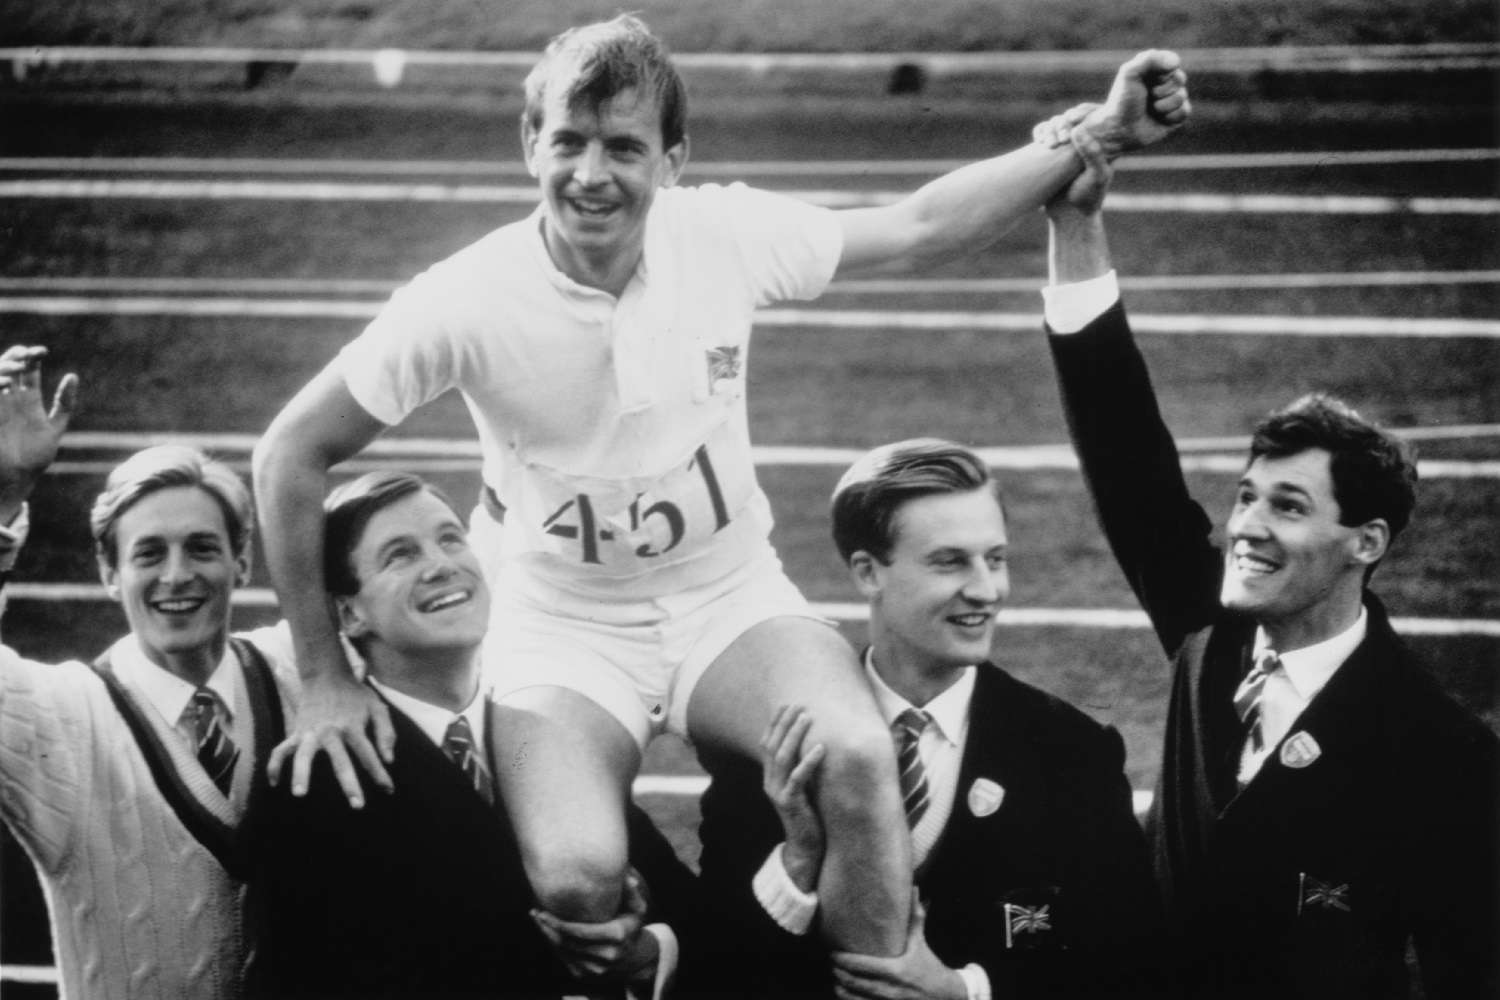 Actor Ian Charleson in the 1982 film Chariots of Fire